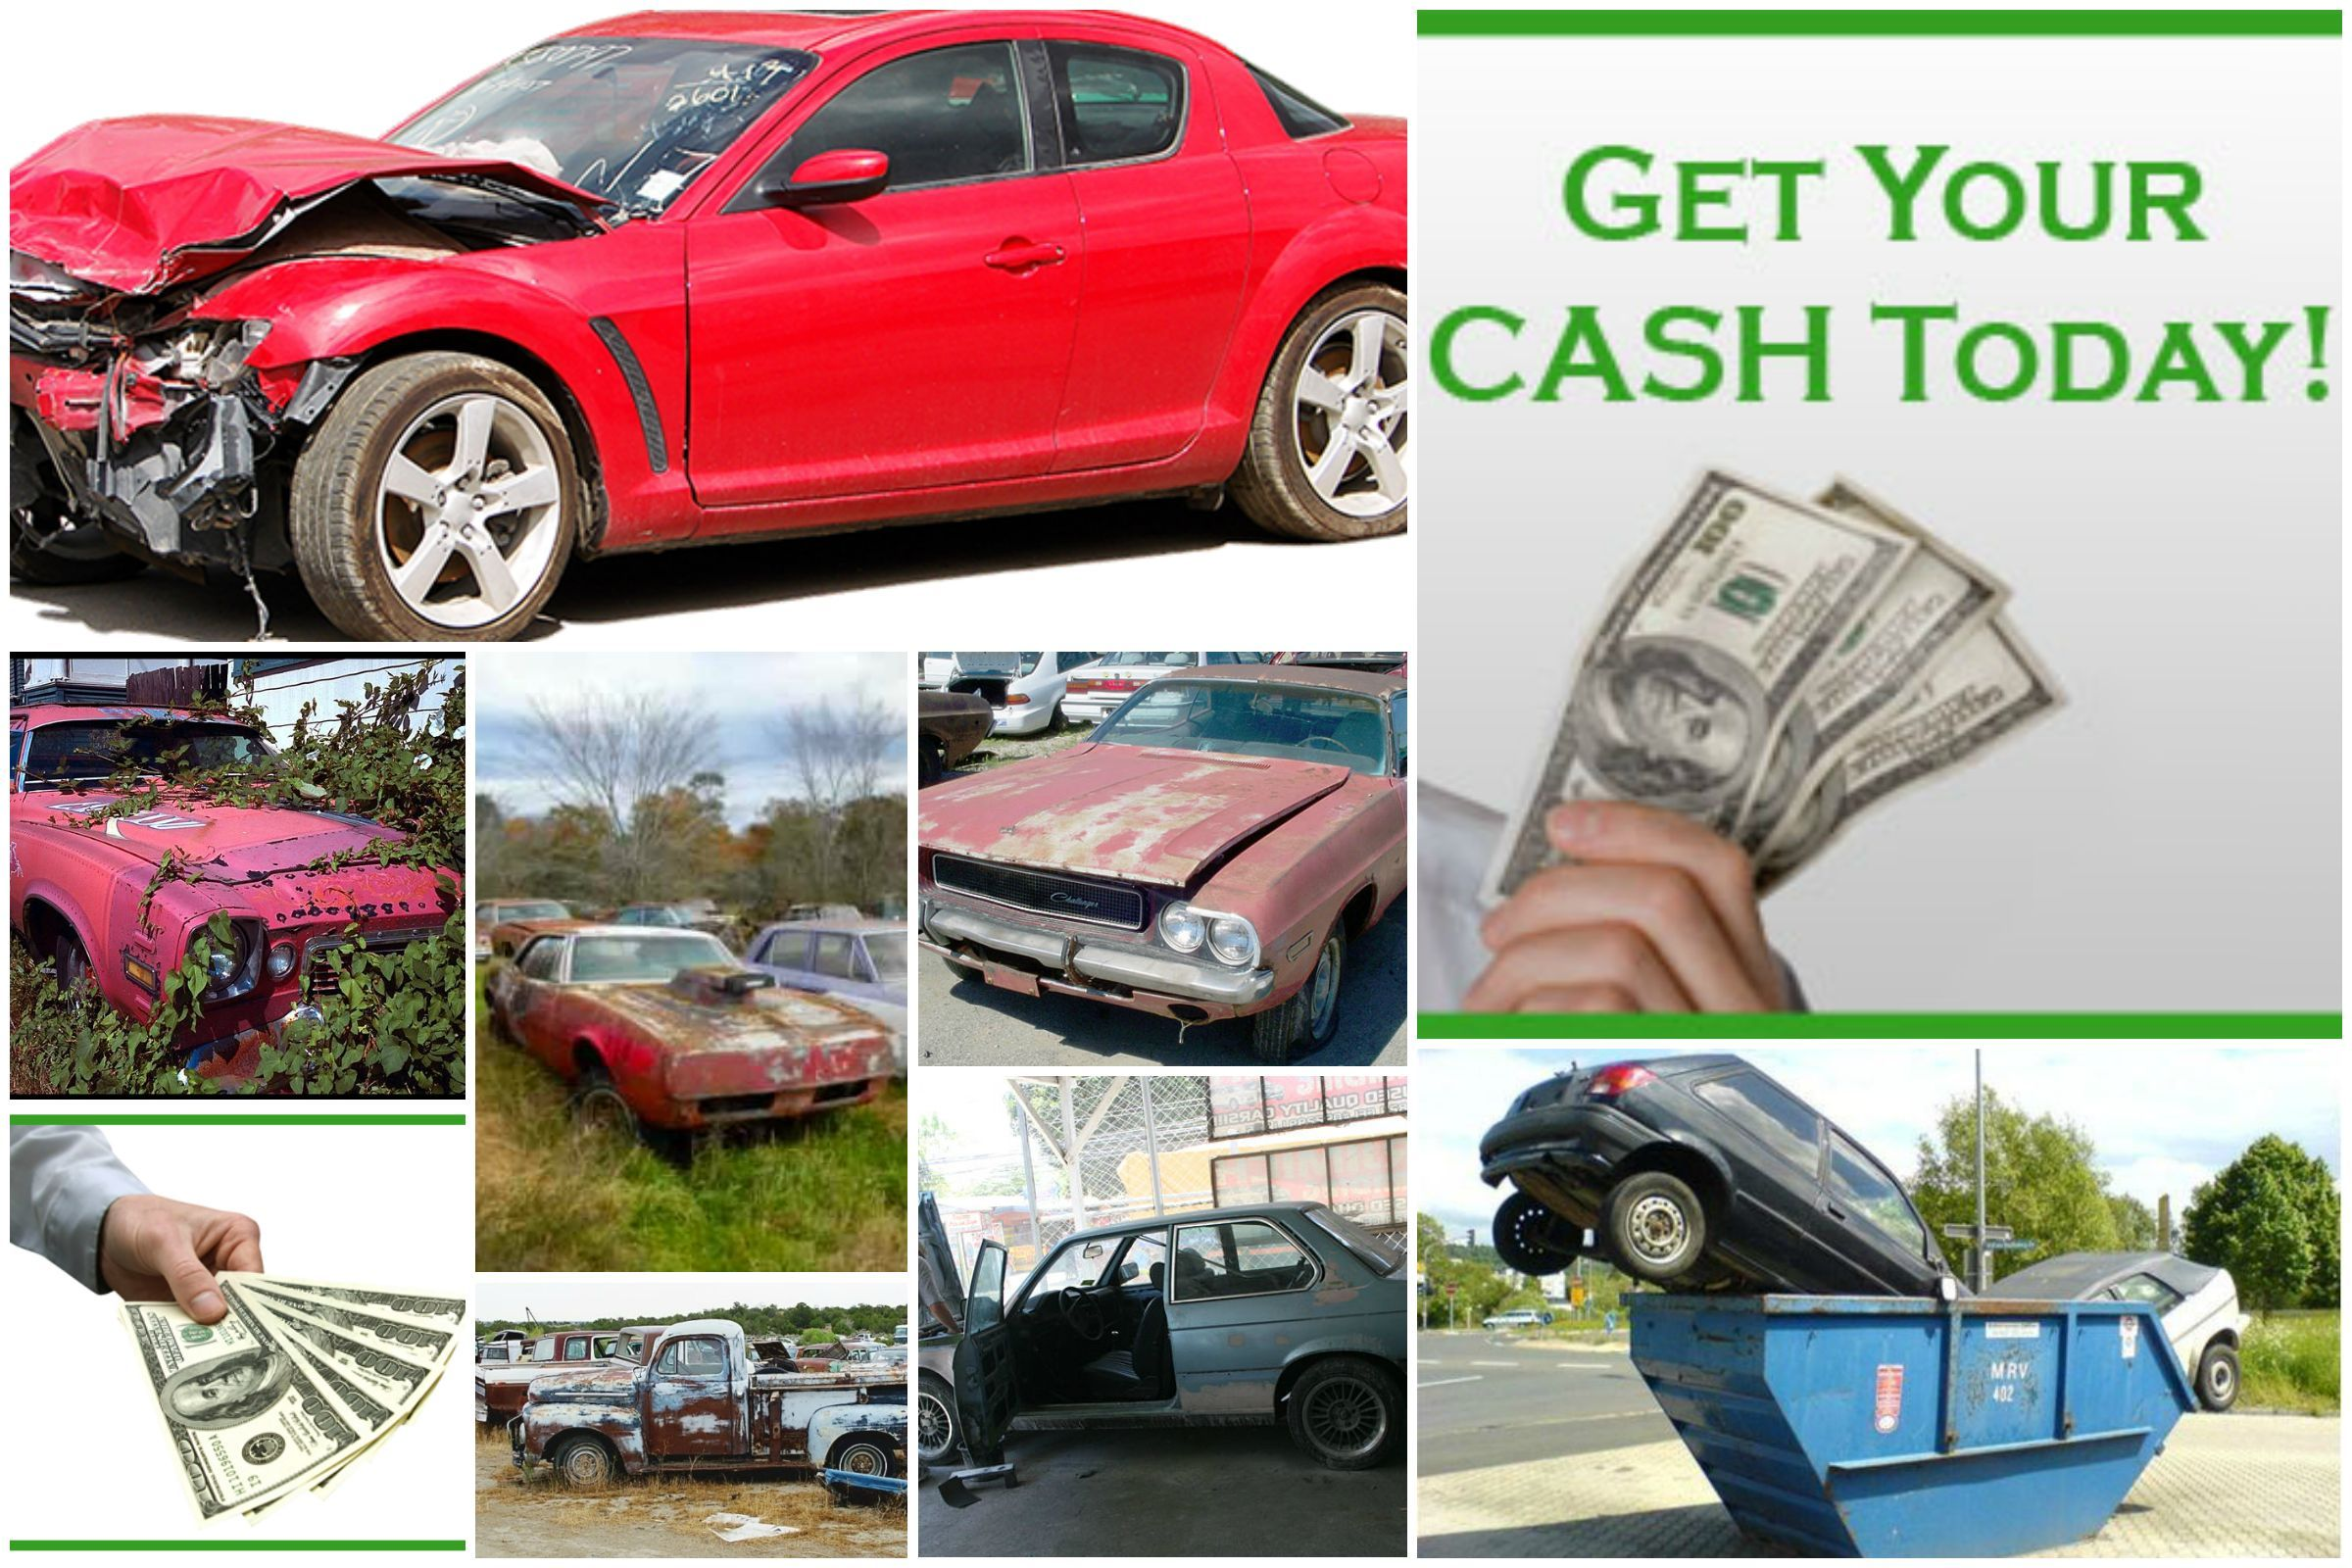 http://www.cashforjunkcarmiami.com/ Sell your Junk Cars in Miami ...